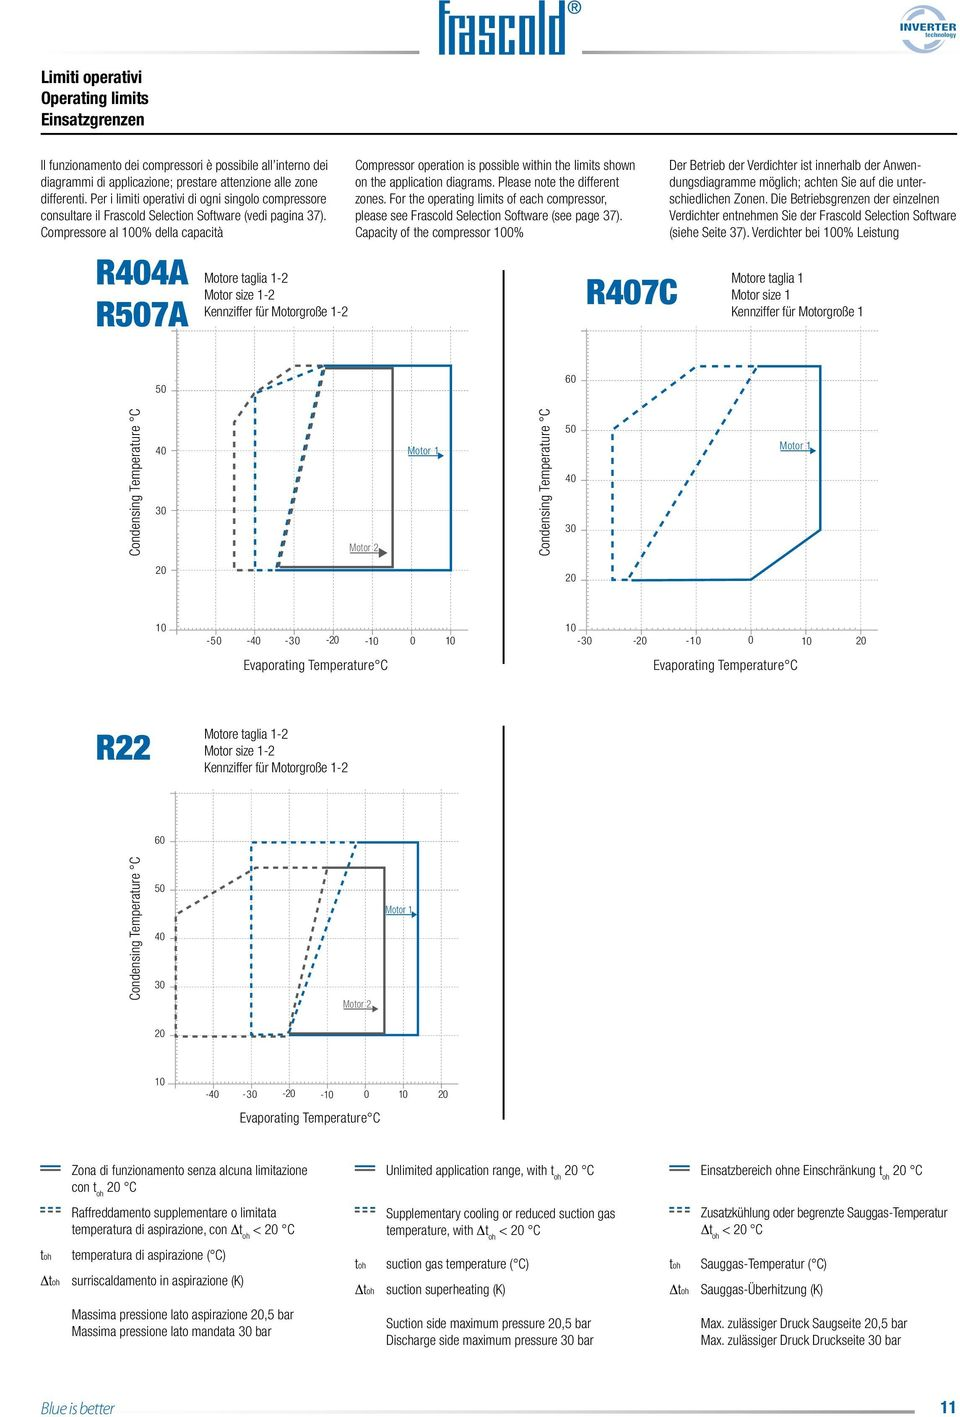 al 00% della capacità R4A R7A Motore taglia - Motor size - Kennziffer für Motorgroße - operation is possible within the limits shown on the application diagrams. Please note the different zones.